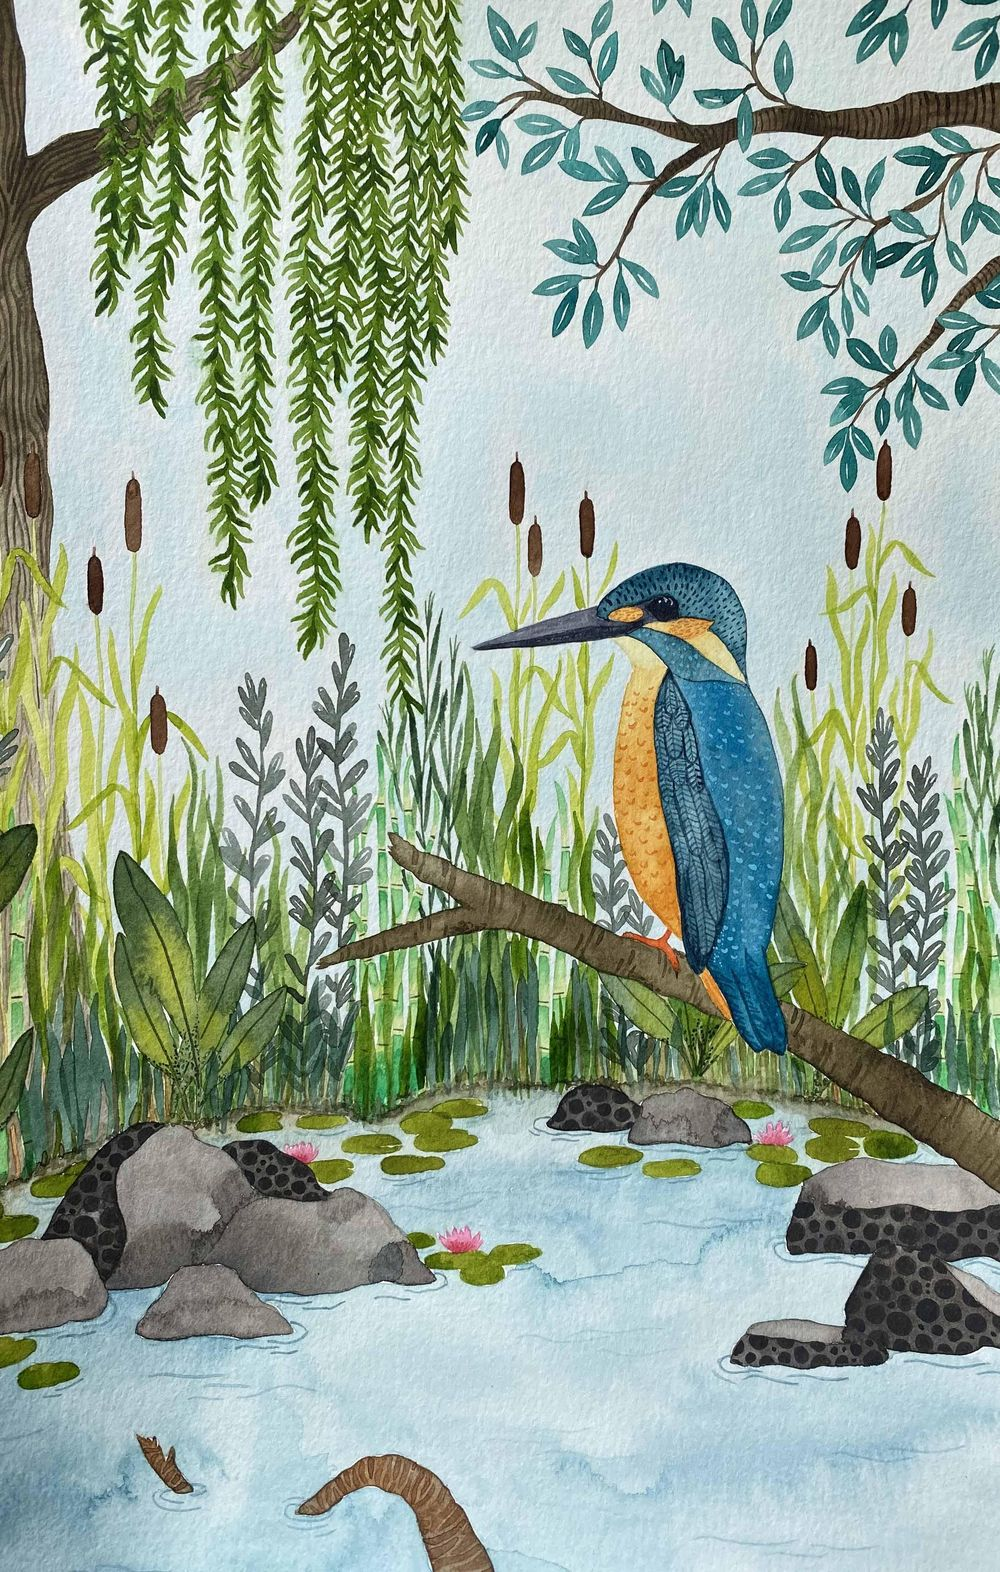 Watercolor Textures: Kingfisher - image 7 - student project